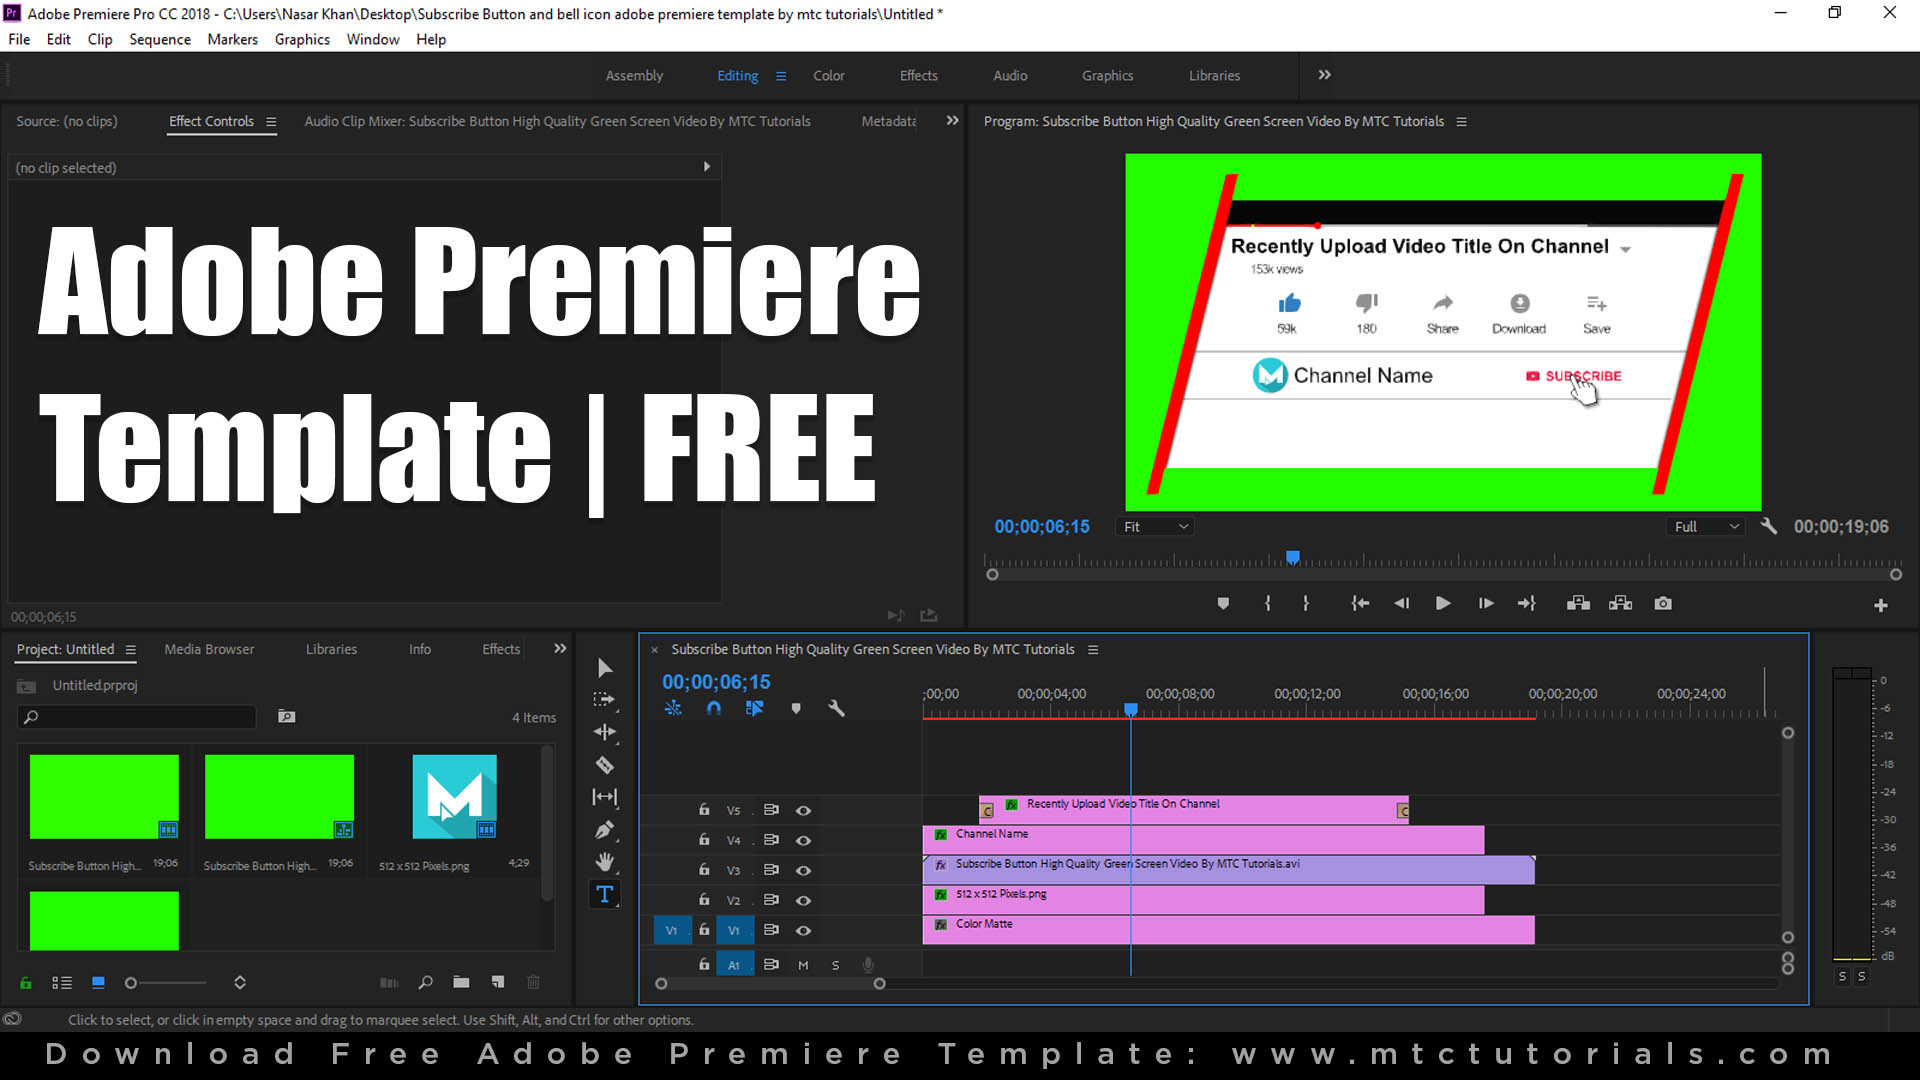 Download Free Subscribe Button and Bell Icon Intro - Adobe Premiere Project